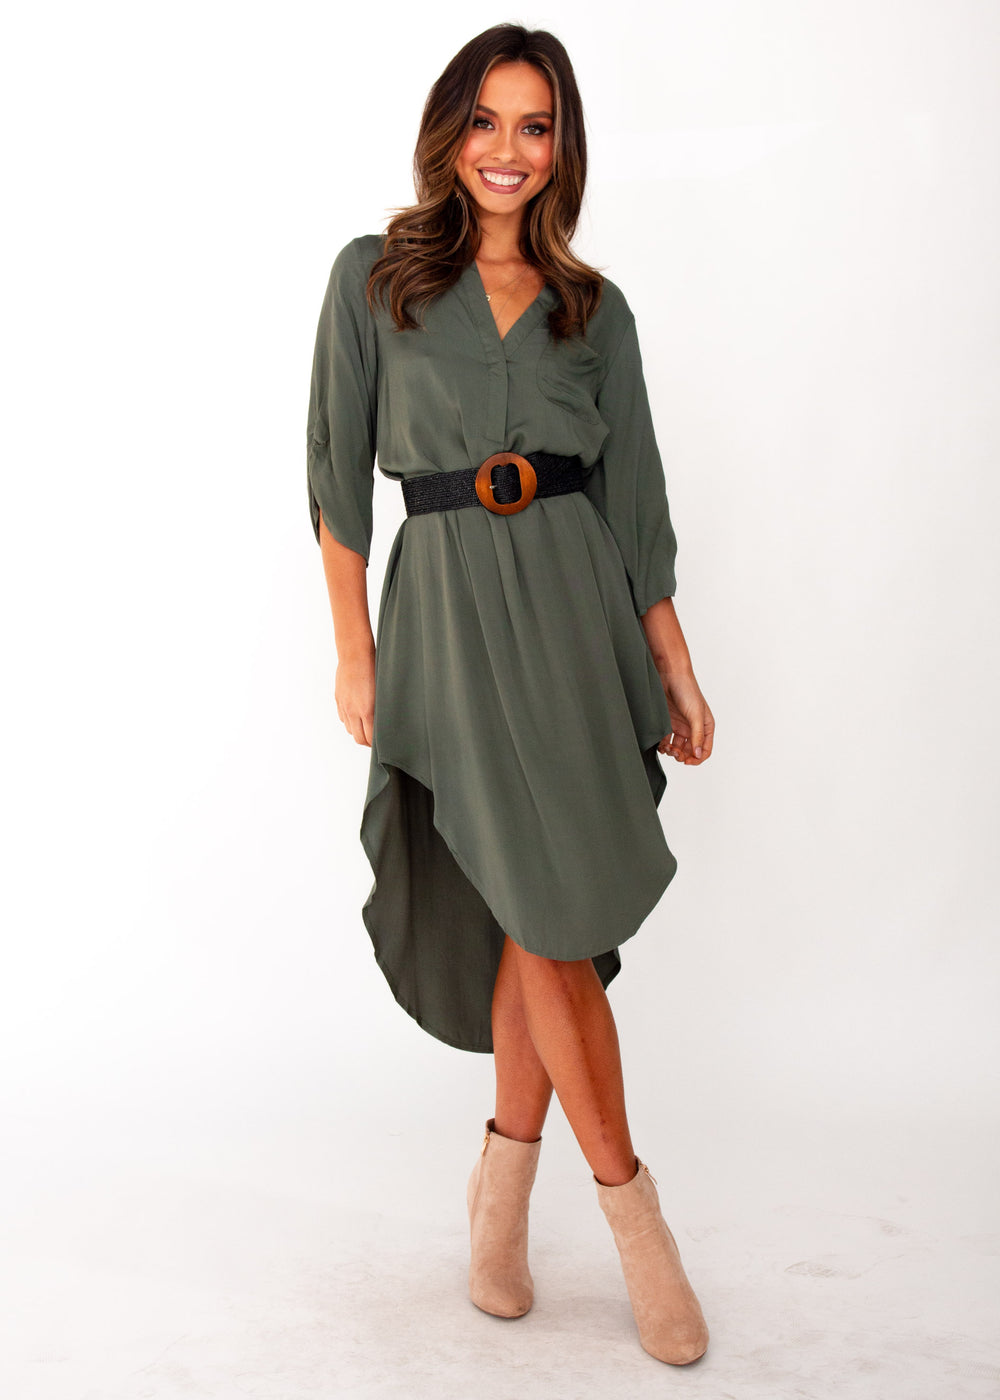 Women's Life With You Tunic Midi Dress - Khaki